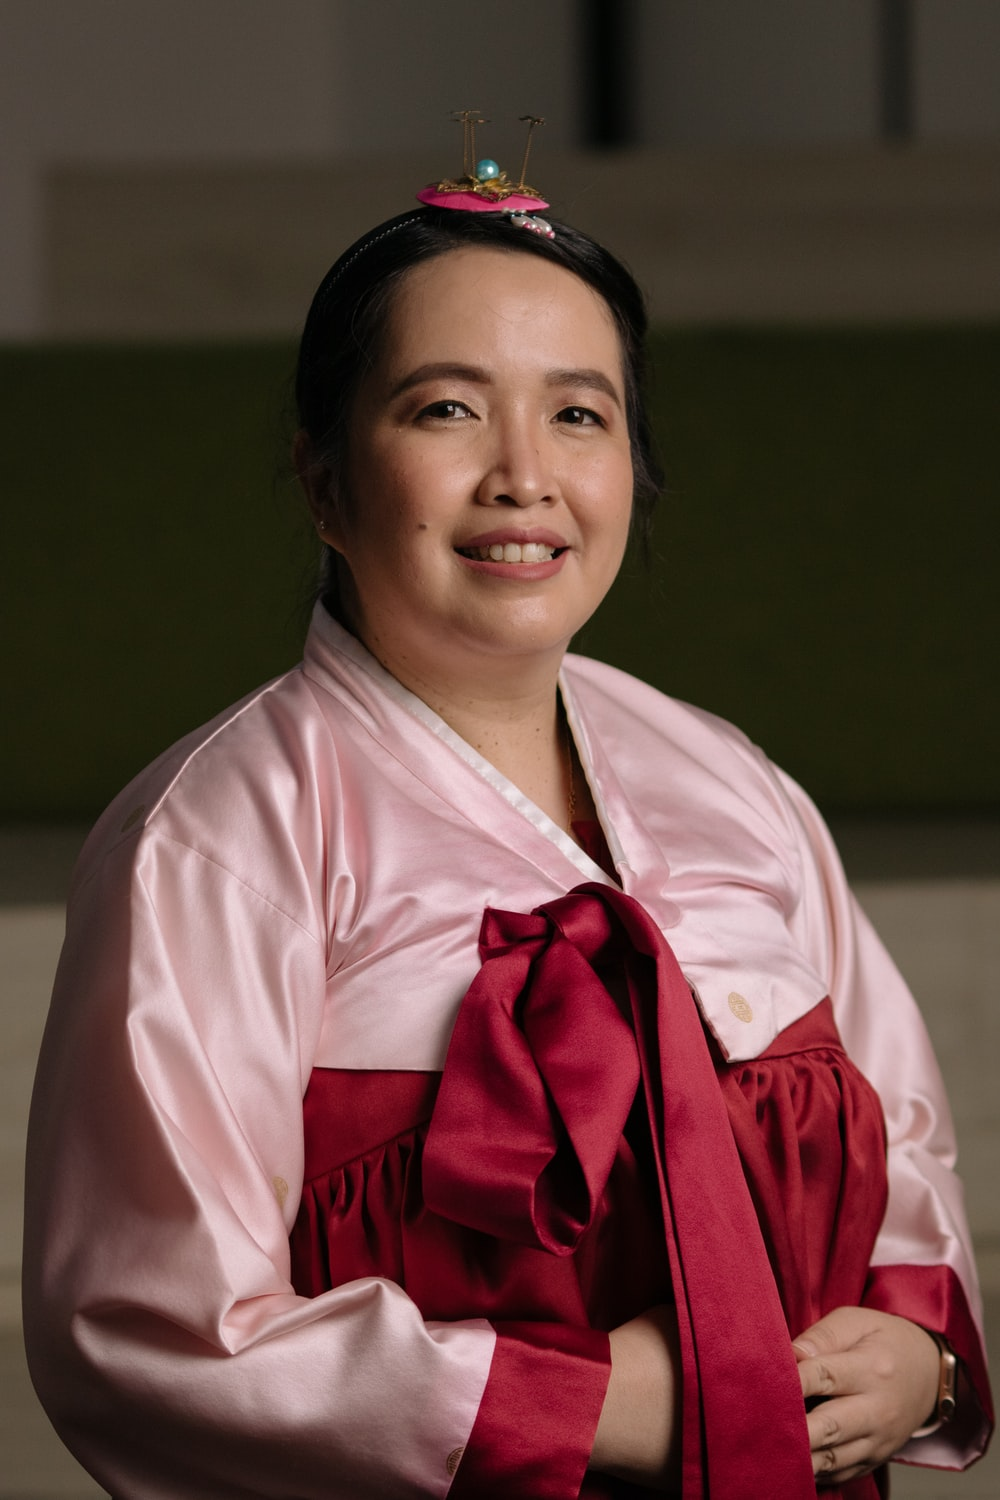 woman in pink robe smiling